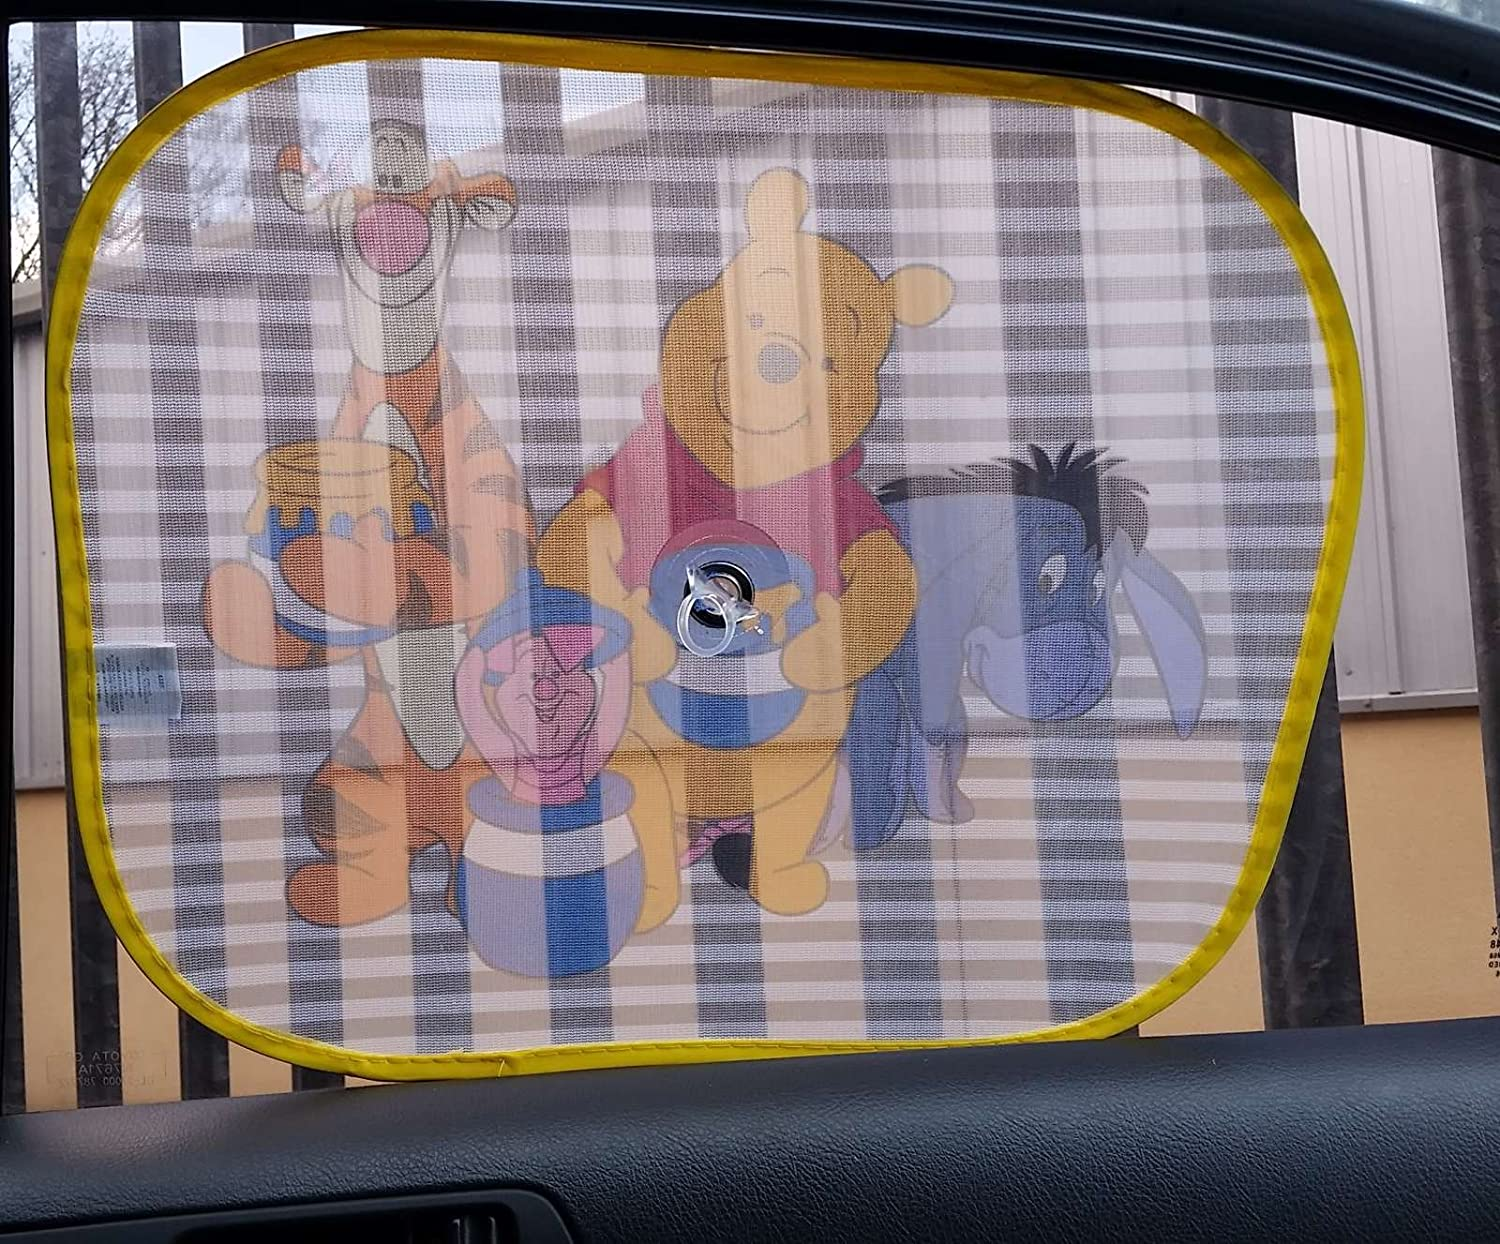 XtremeAuto/® Disney Pixar Winnie The Pooh Side Car Sunshade X2 Complete with XtremeAuto Sticker